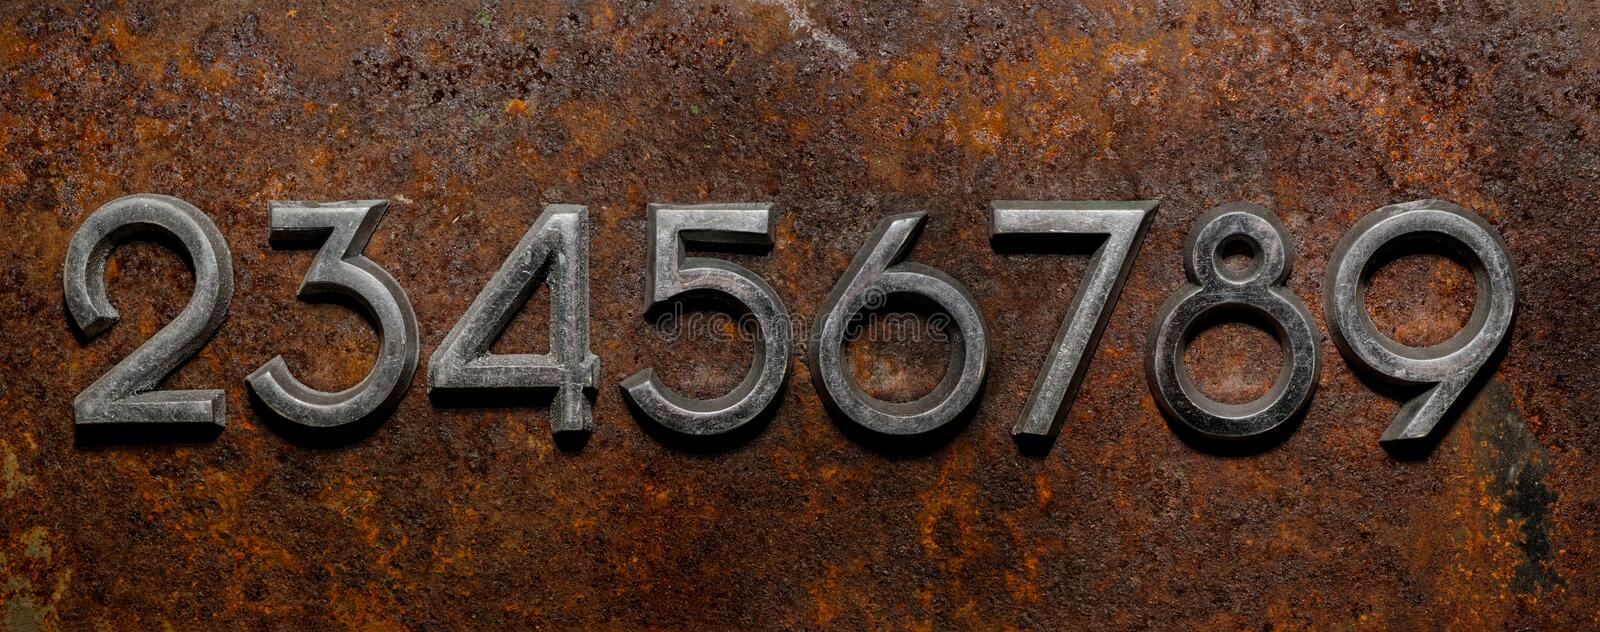 Row of metal cyrillic digits on a rusty background stock photos